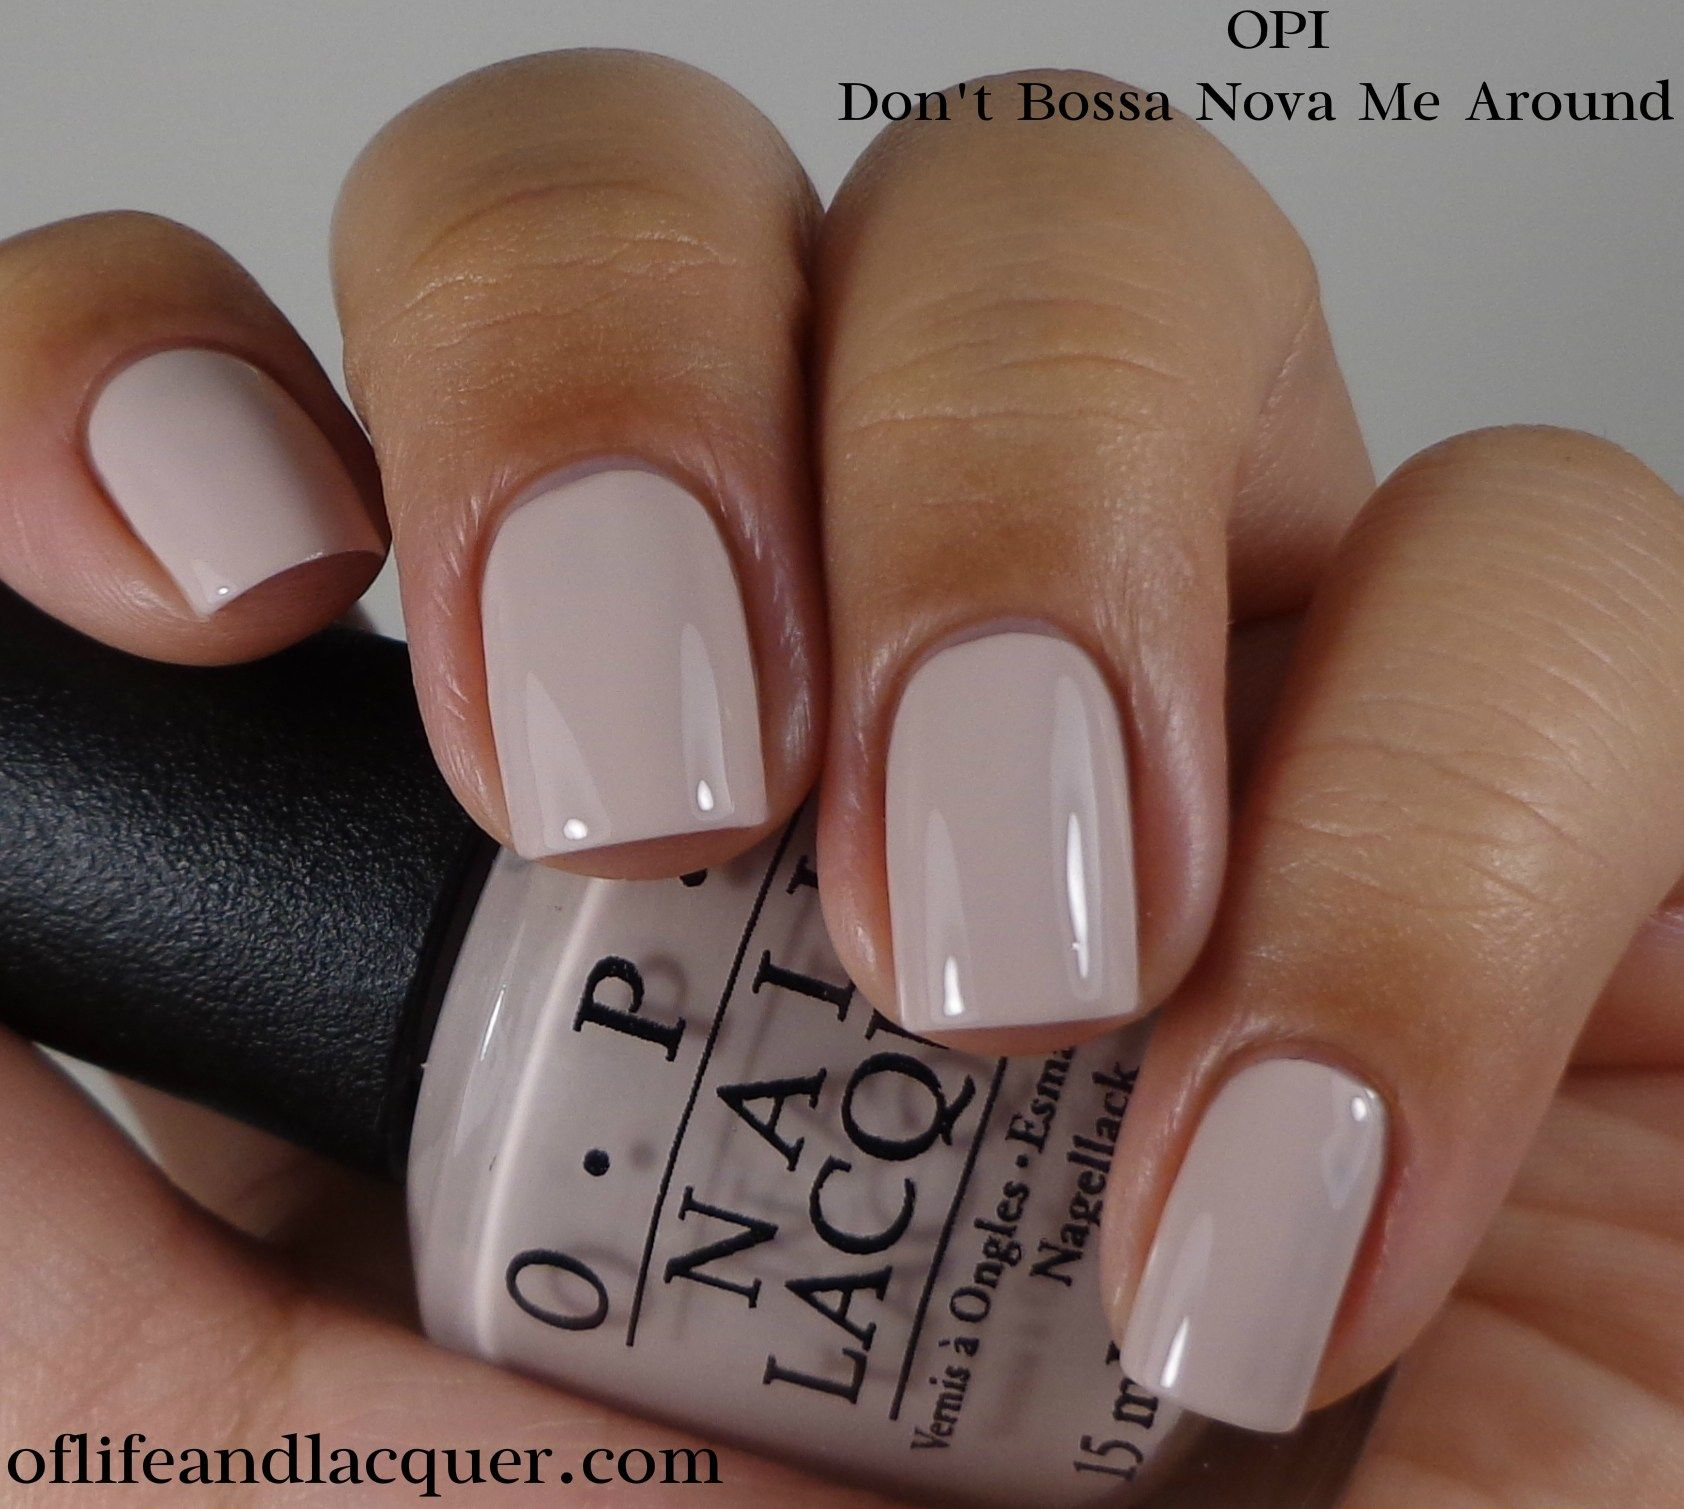 OPI-Dont-Bossa-Nova-Me-Around-1a.jpg 1,684×1,509 pixels | ✨Nails ...